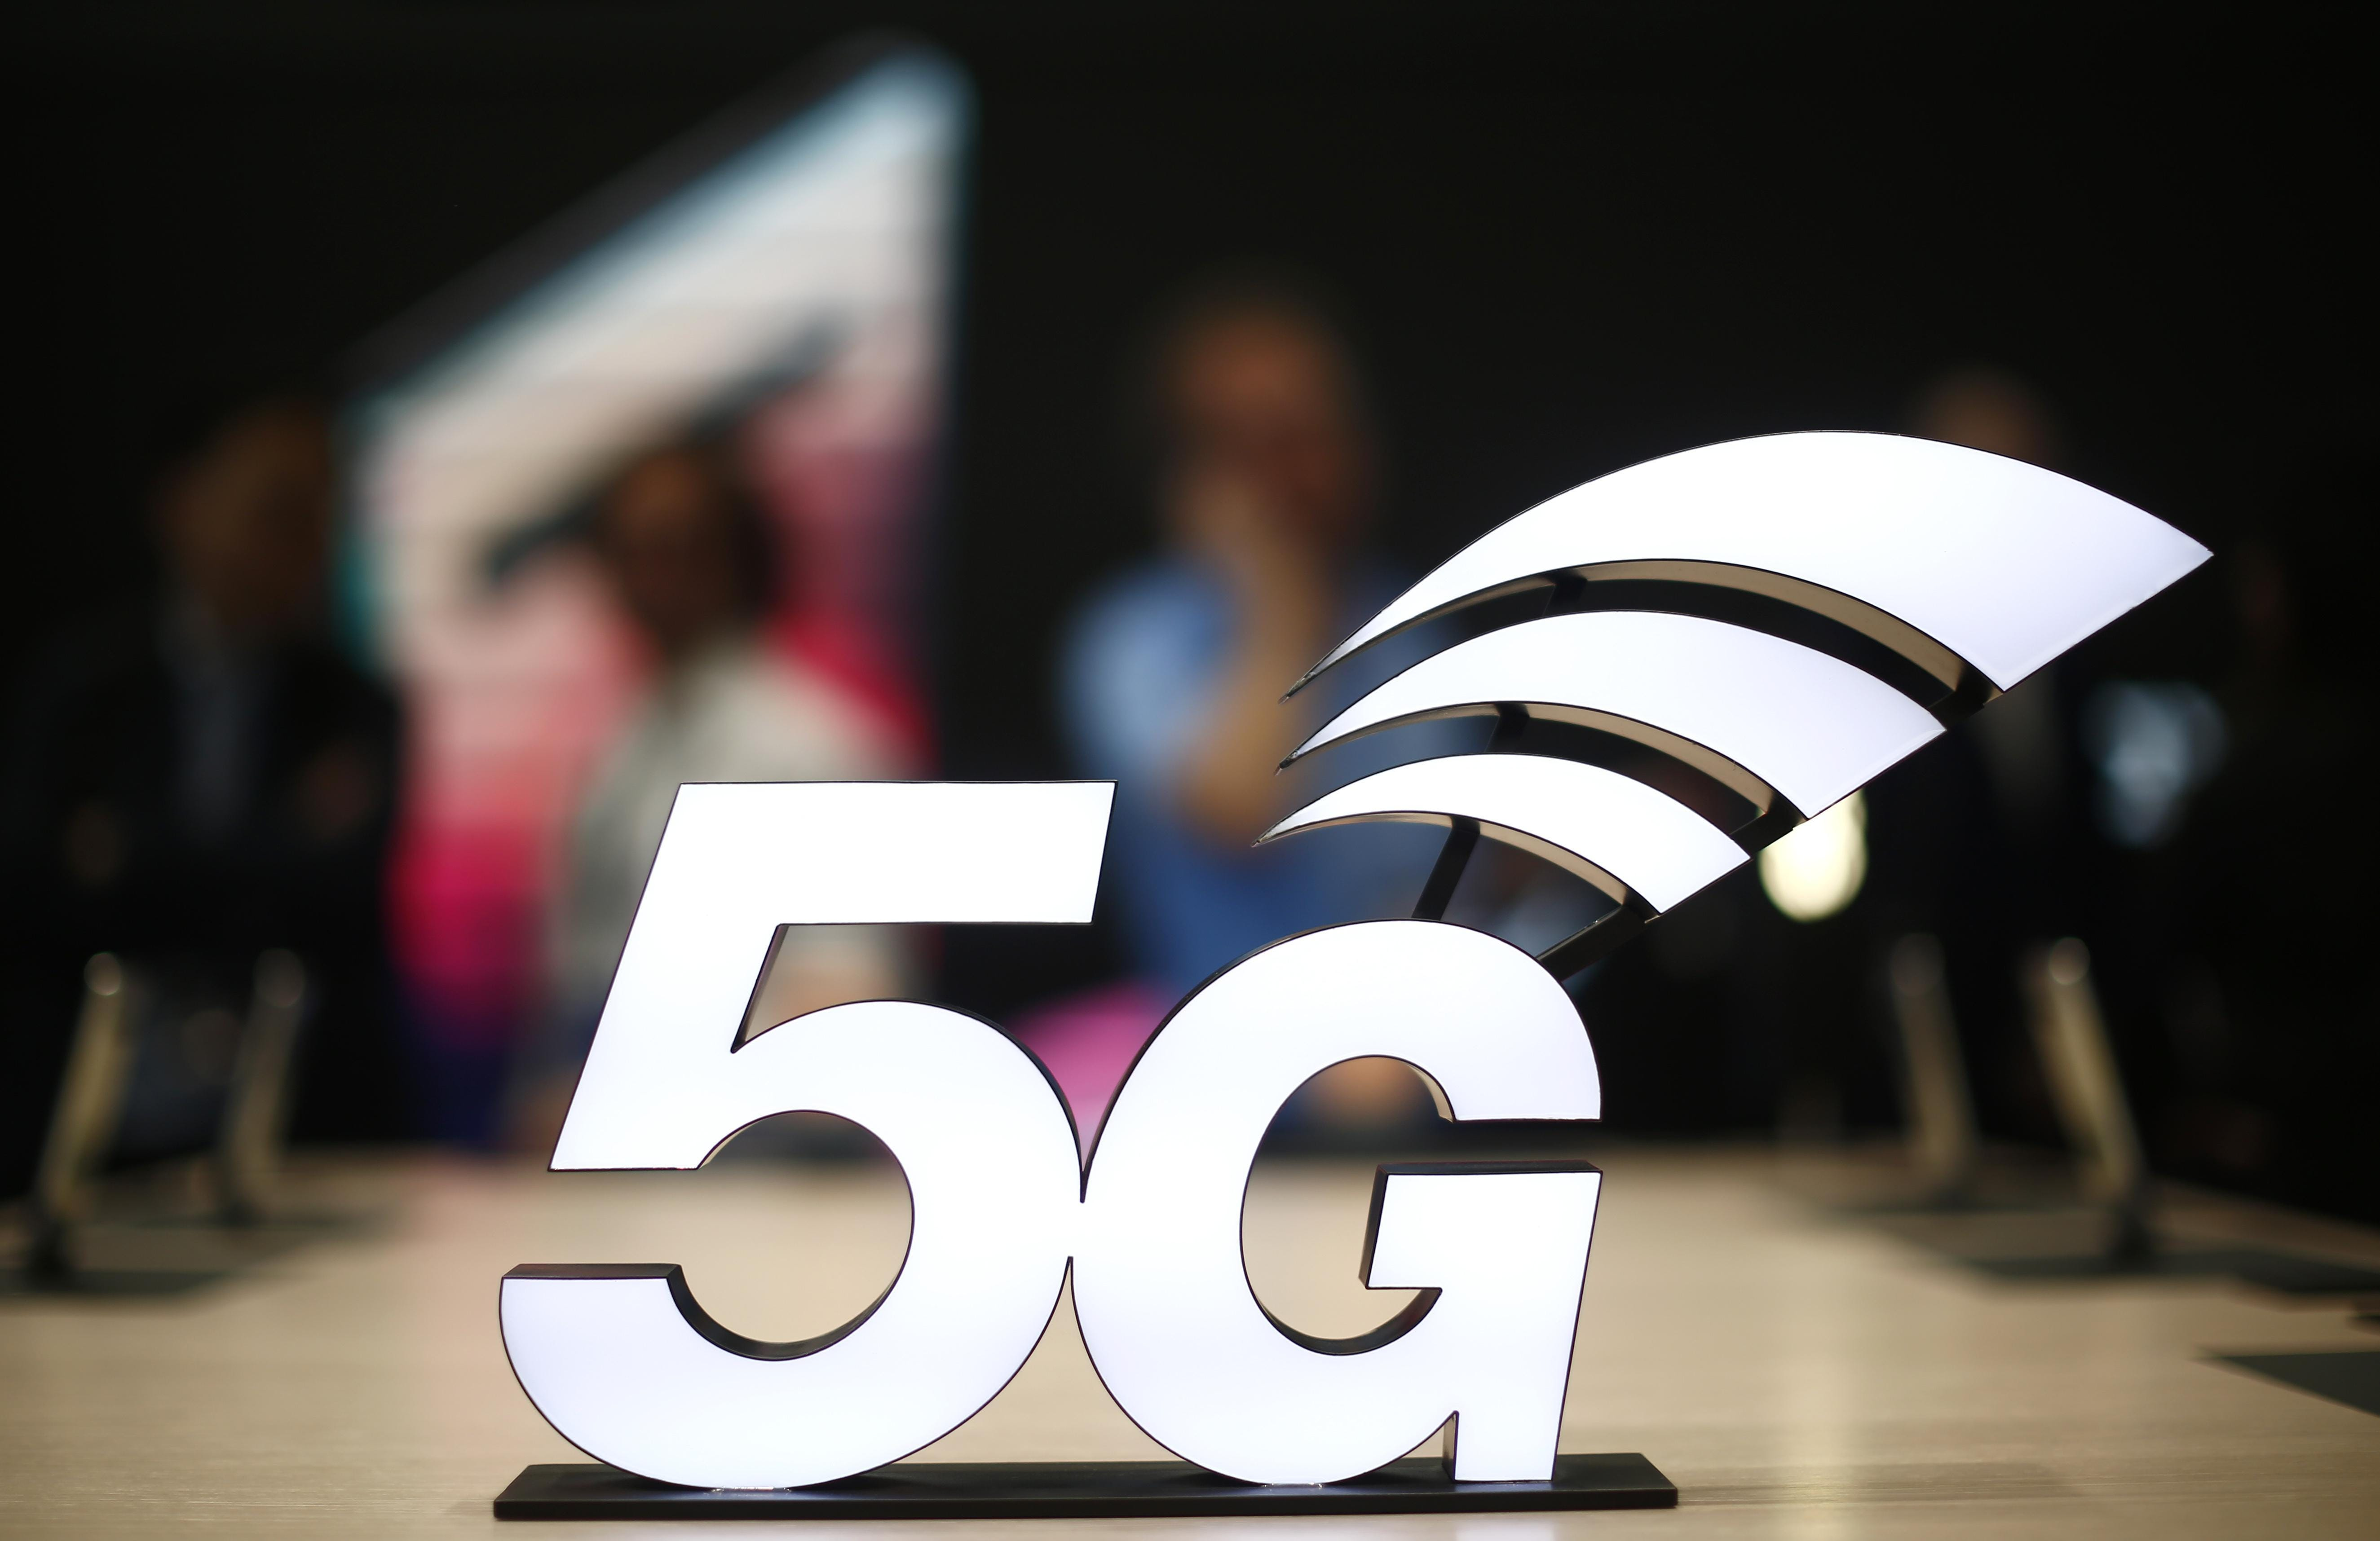 who is leading the 5g race